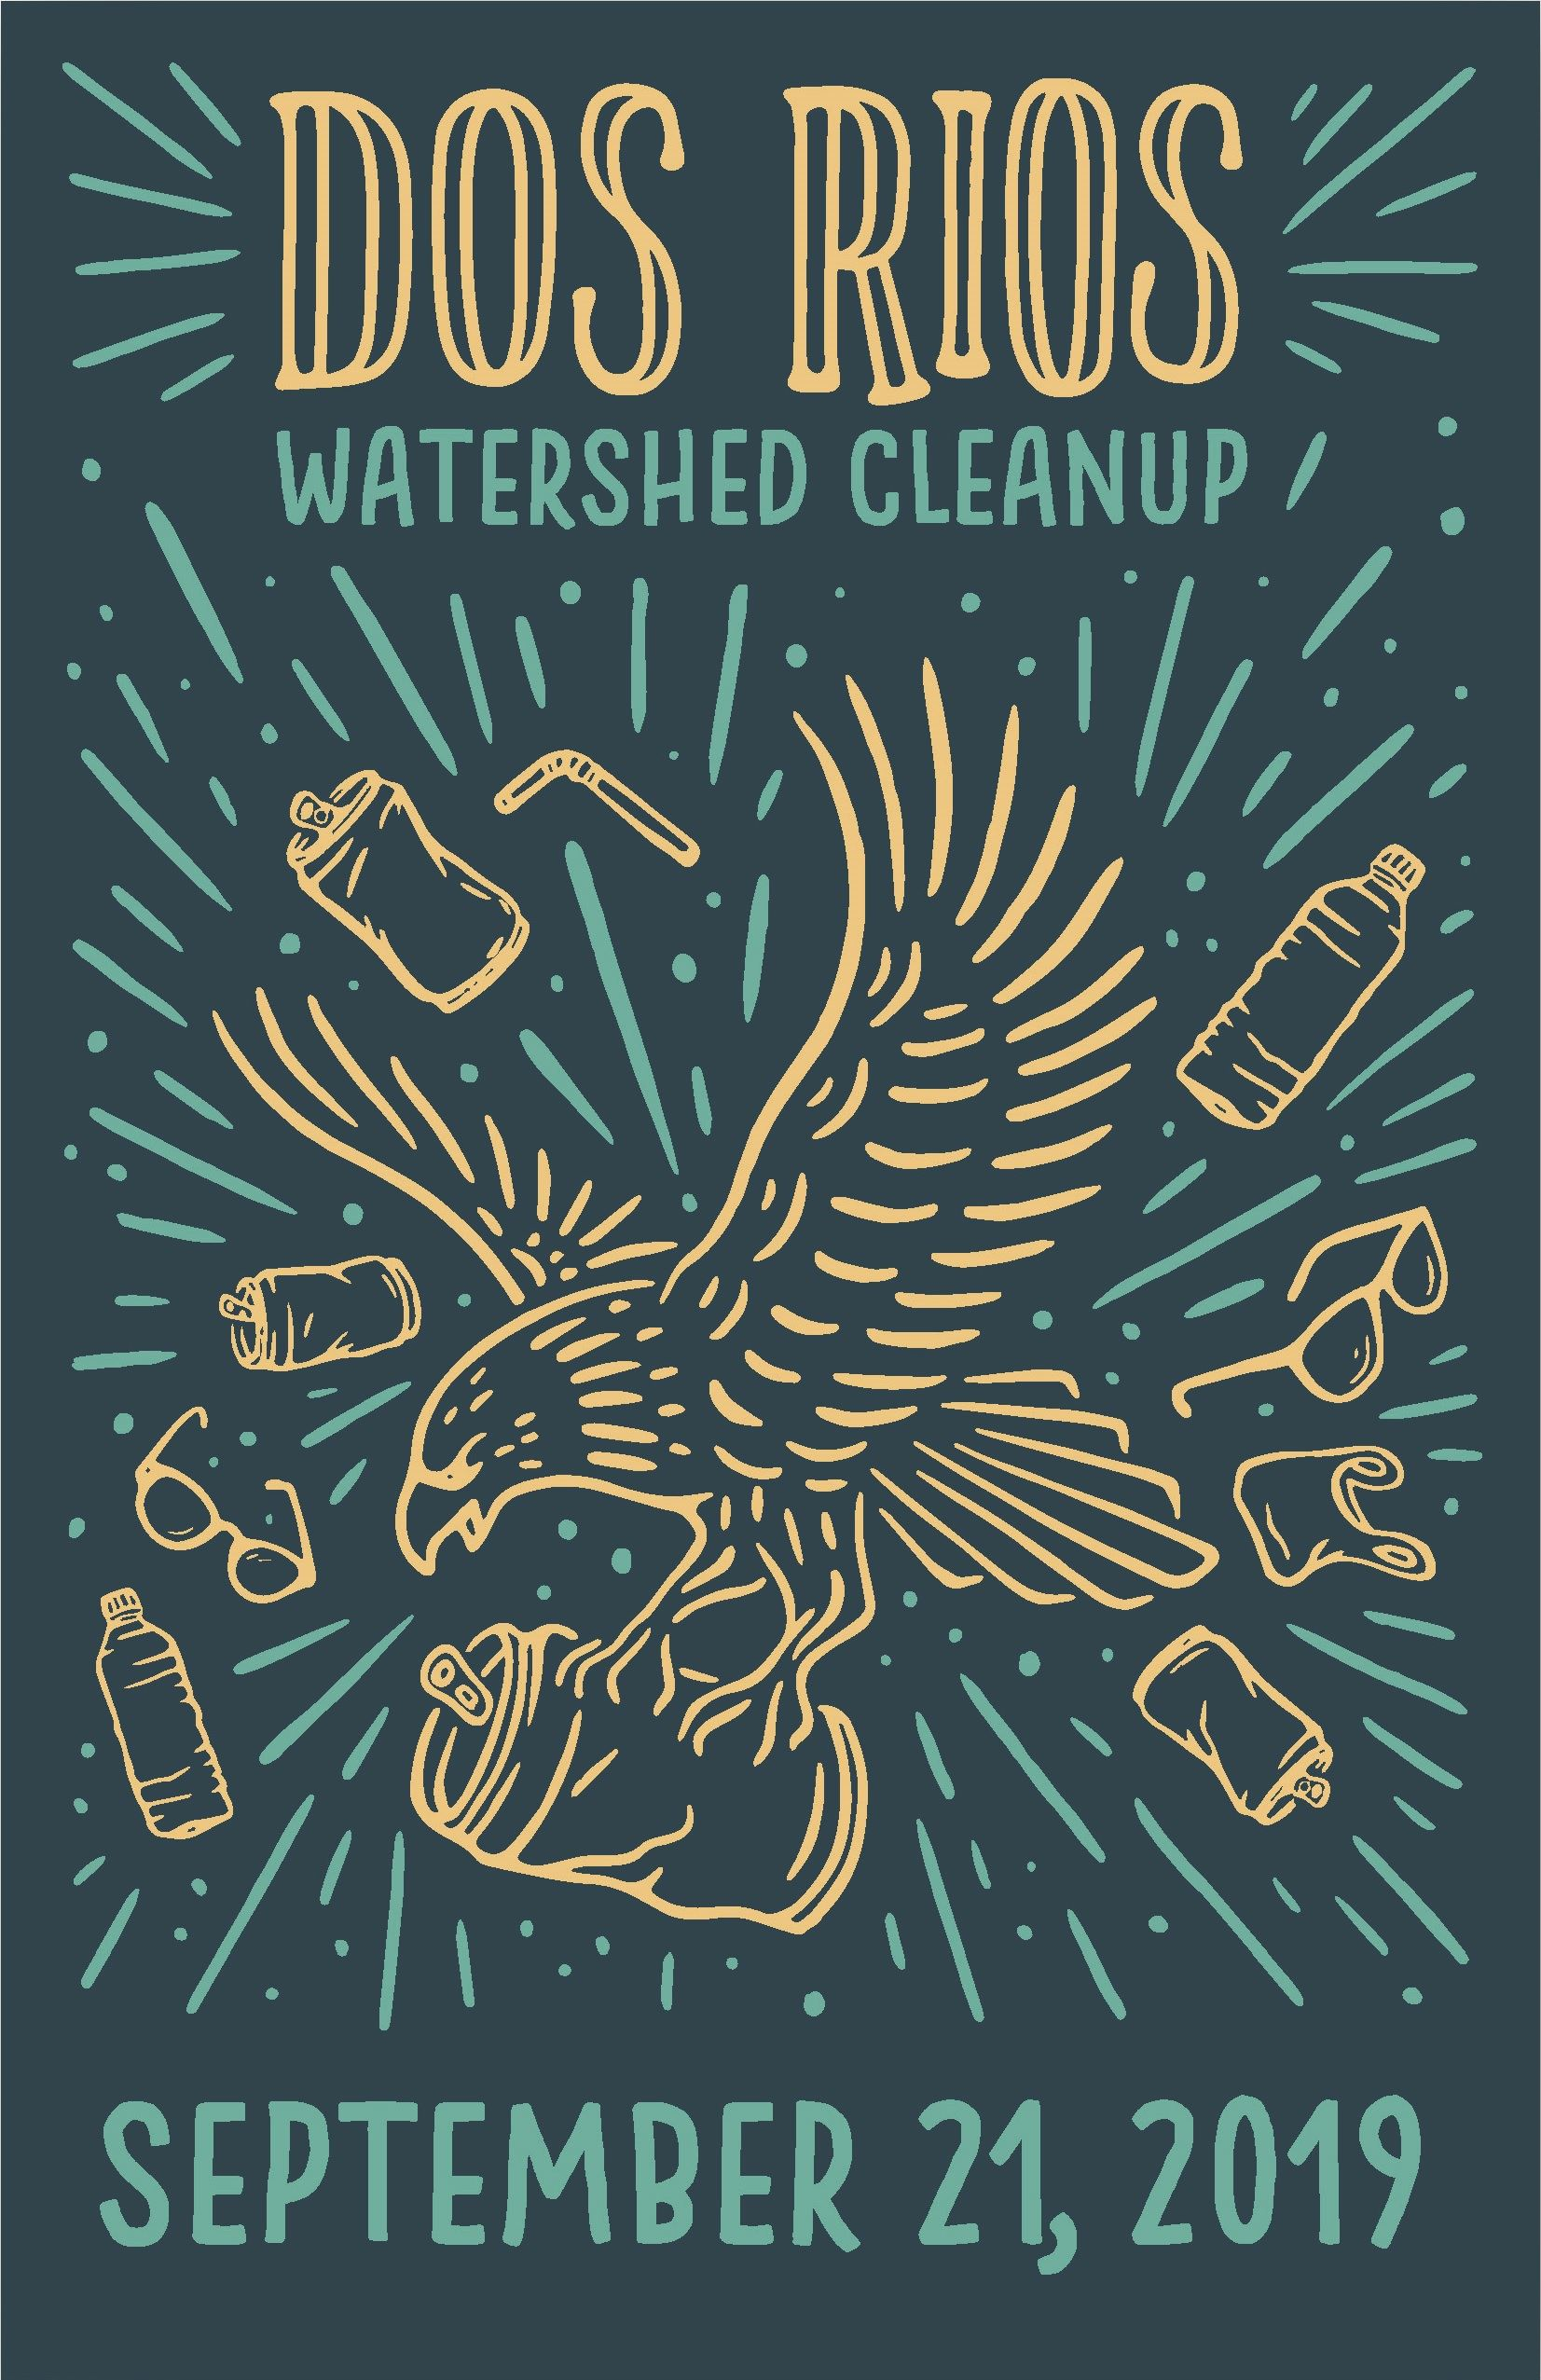 2019 Dos Rios Watershed Clean-up - Sept. 21st